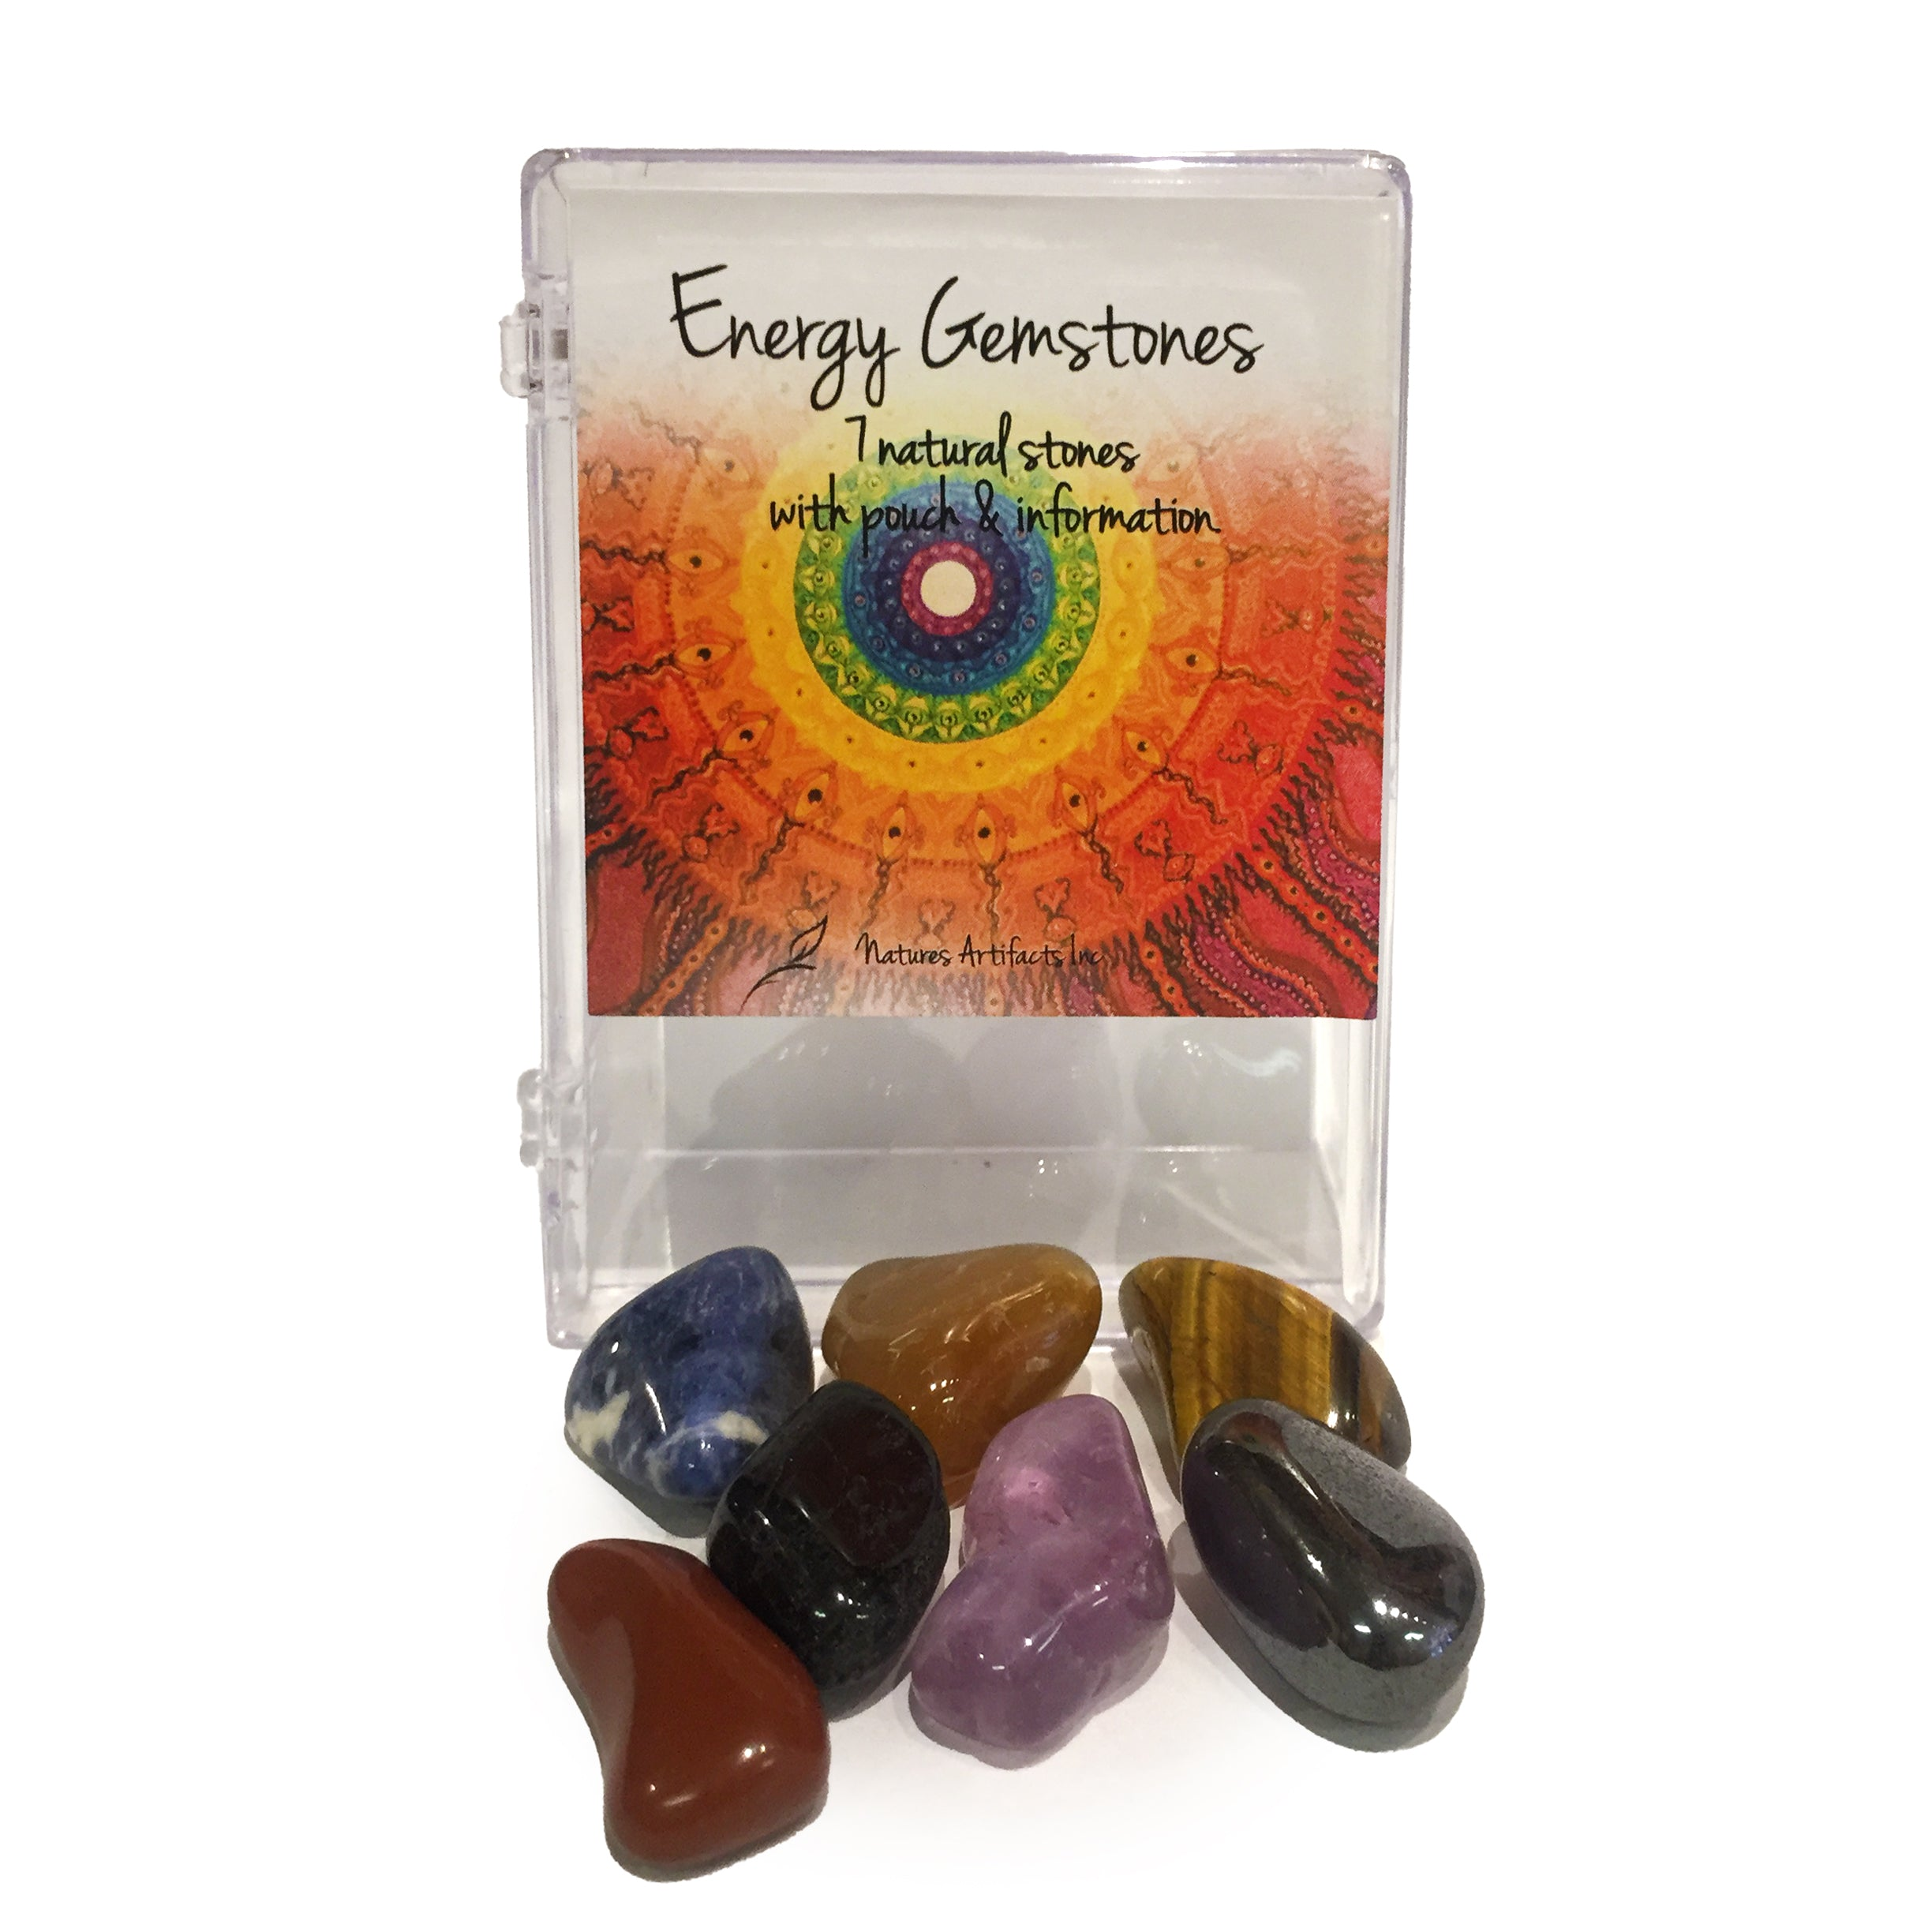 Energy Gemstones, 7 Natural Stones